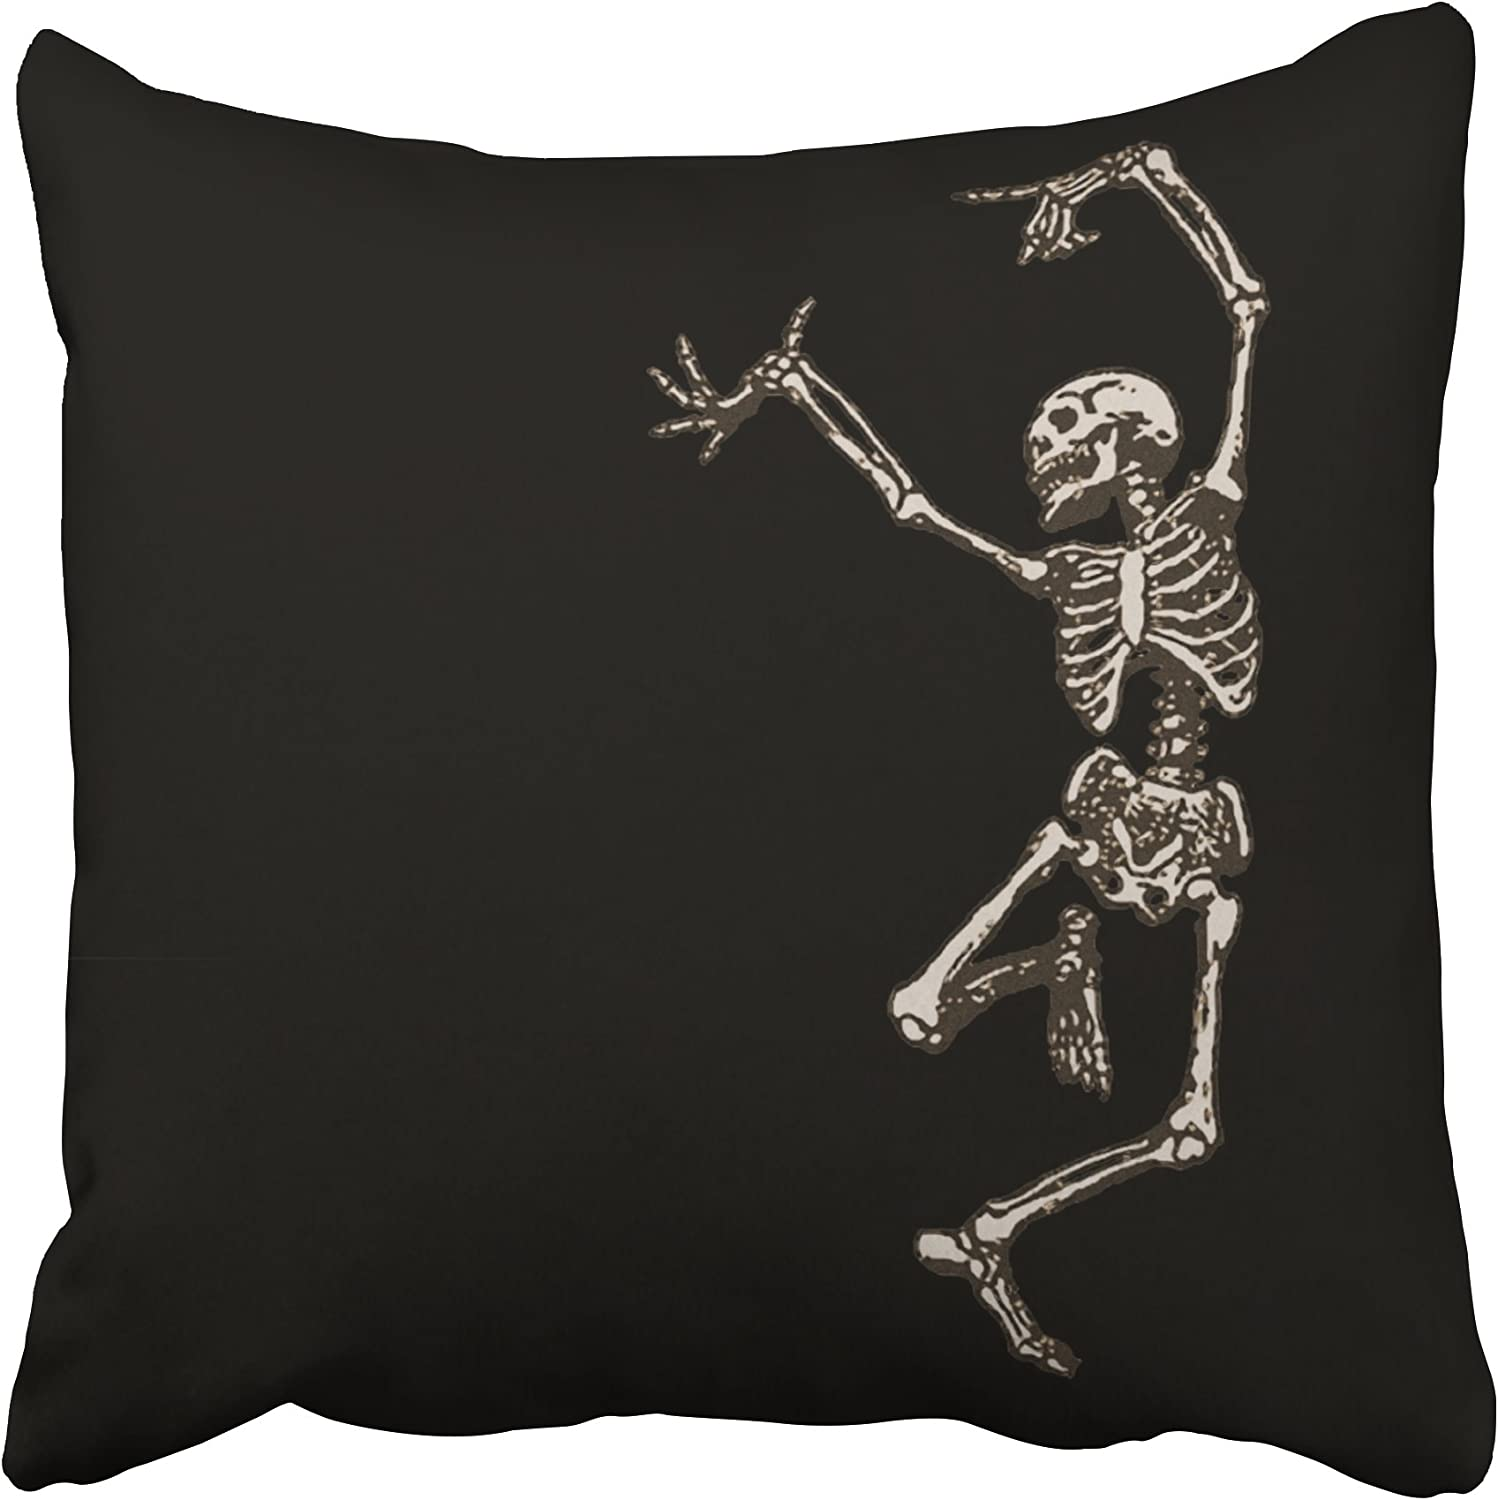 Accrocn Halloween Dancing Skeleton Throw Pillow Covers Cushion Cover Case 20x20 Inches Pillowcases One Sided Home Kitchen